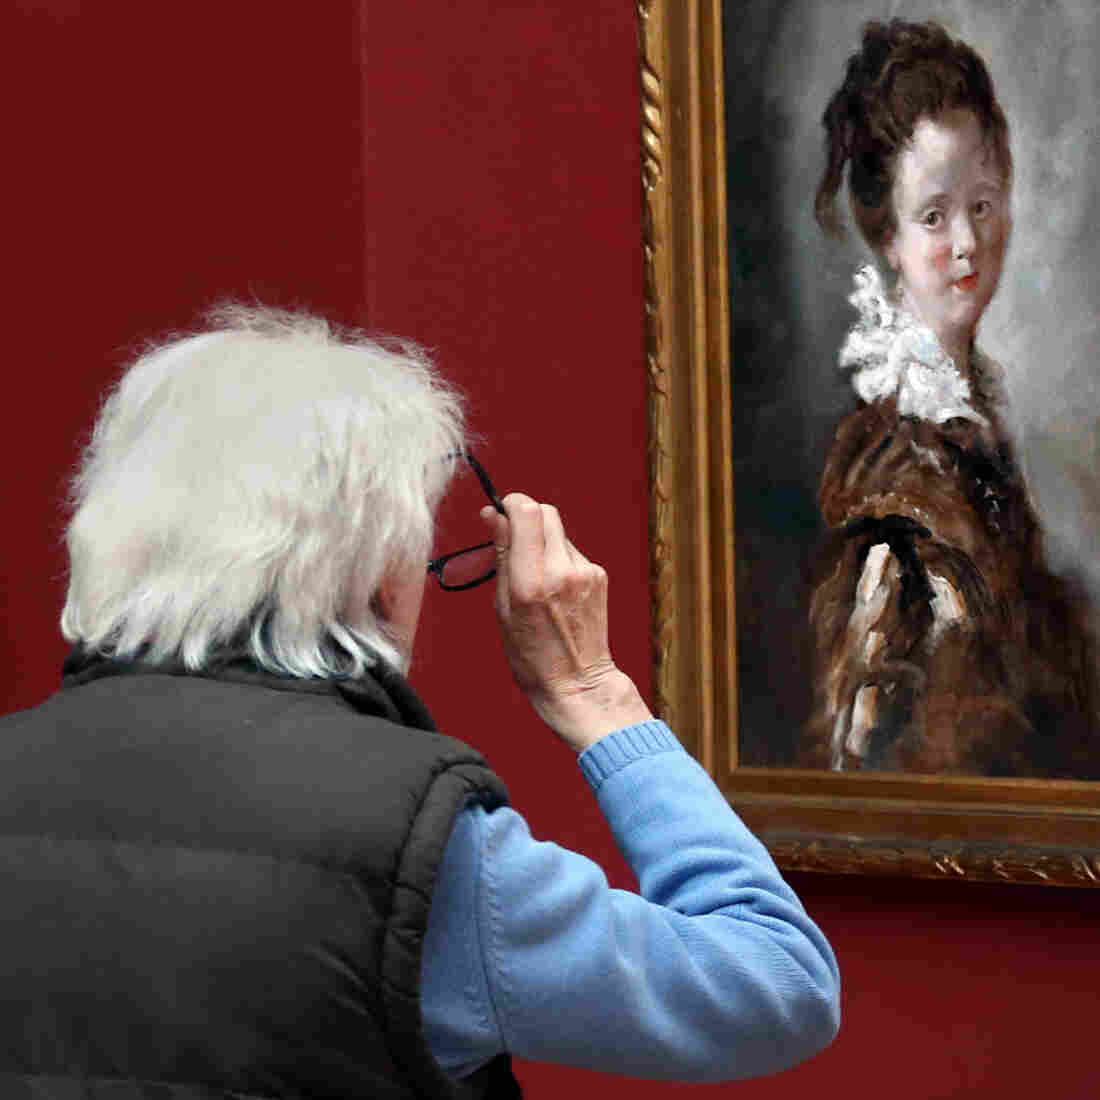 A visitor views a replica of Jean-Honore Fragonard's 18th century painting, Young Woman (right) as the original hangs to its left.